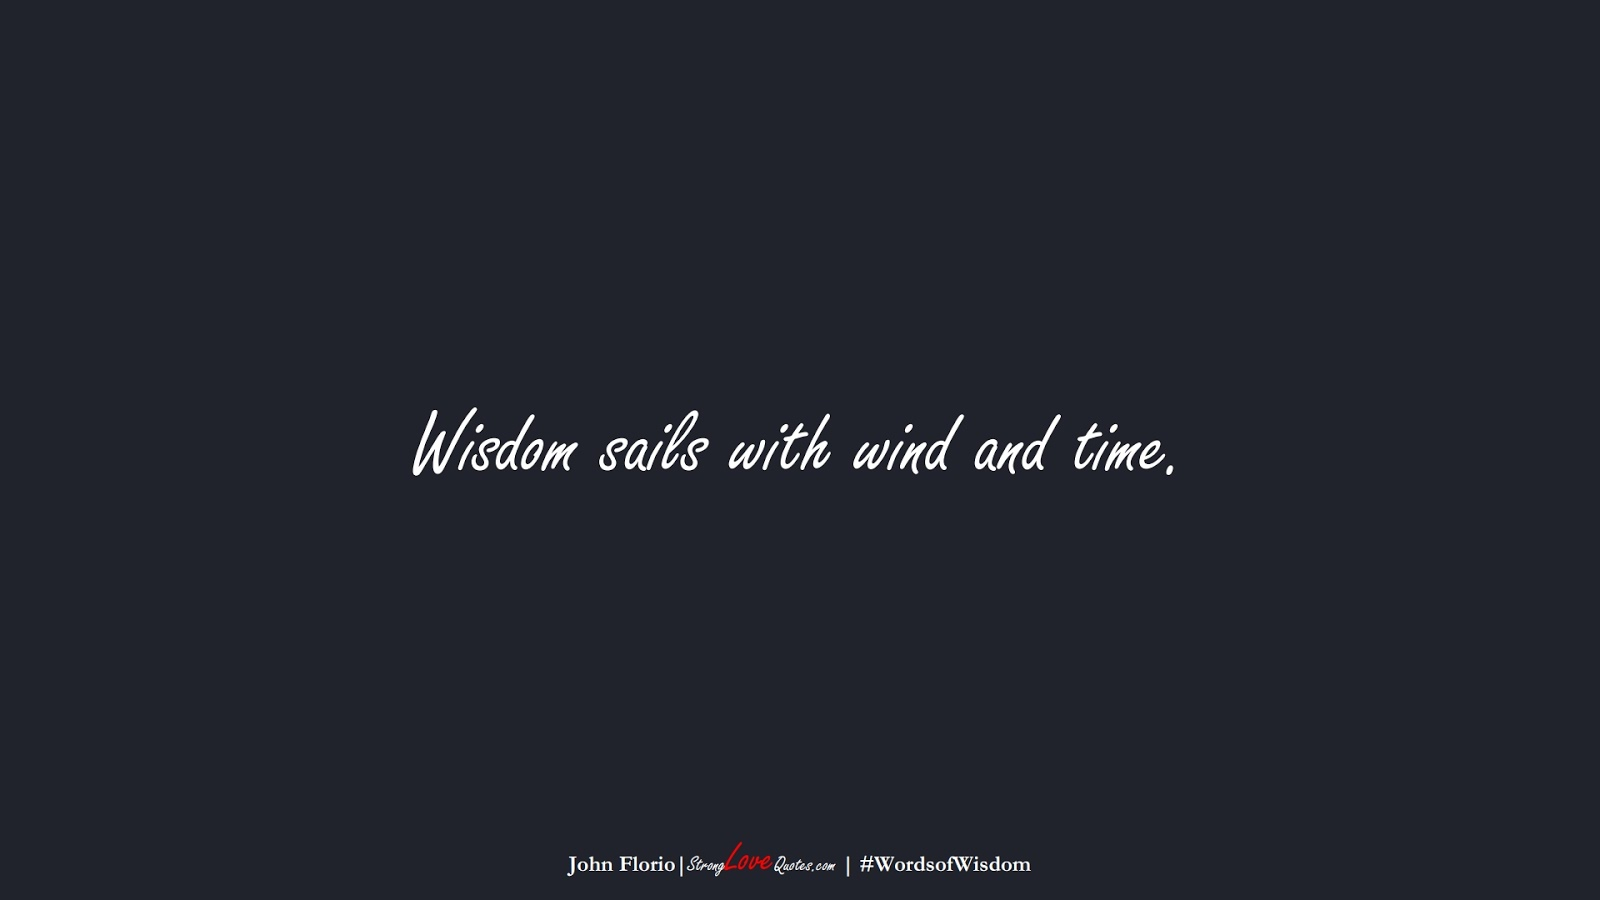 Wisdom sails with wind and time. (John Florio);  #WordsofWisdom